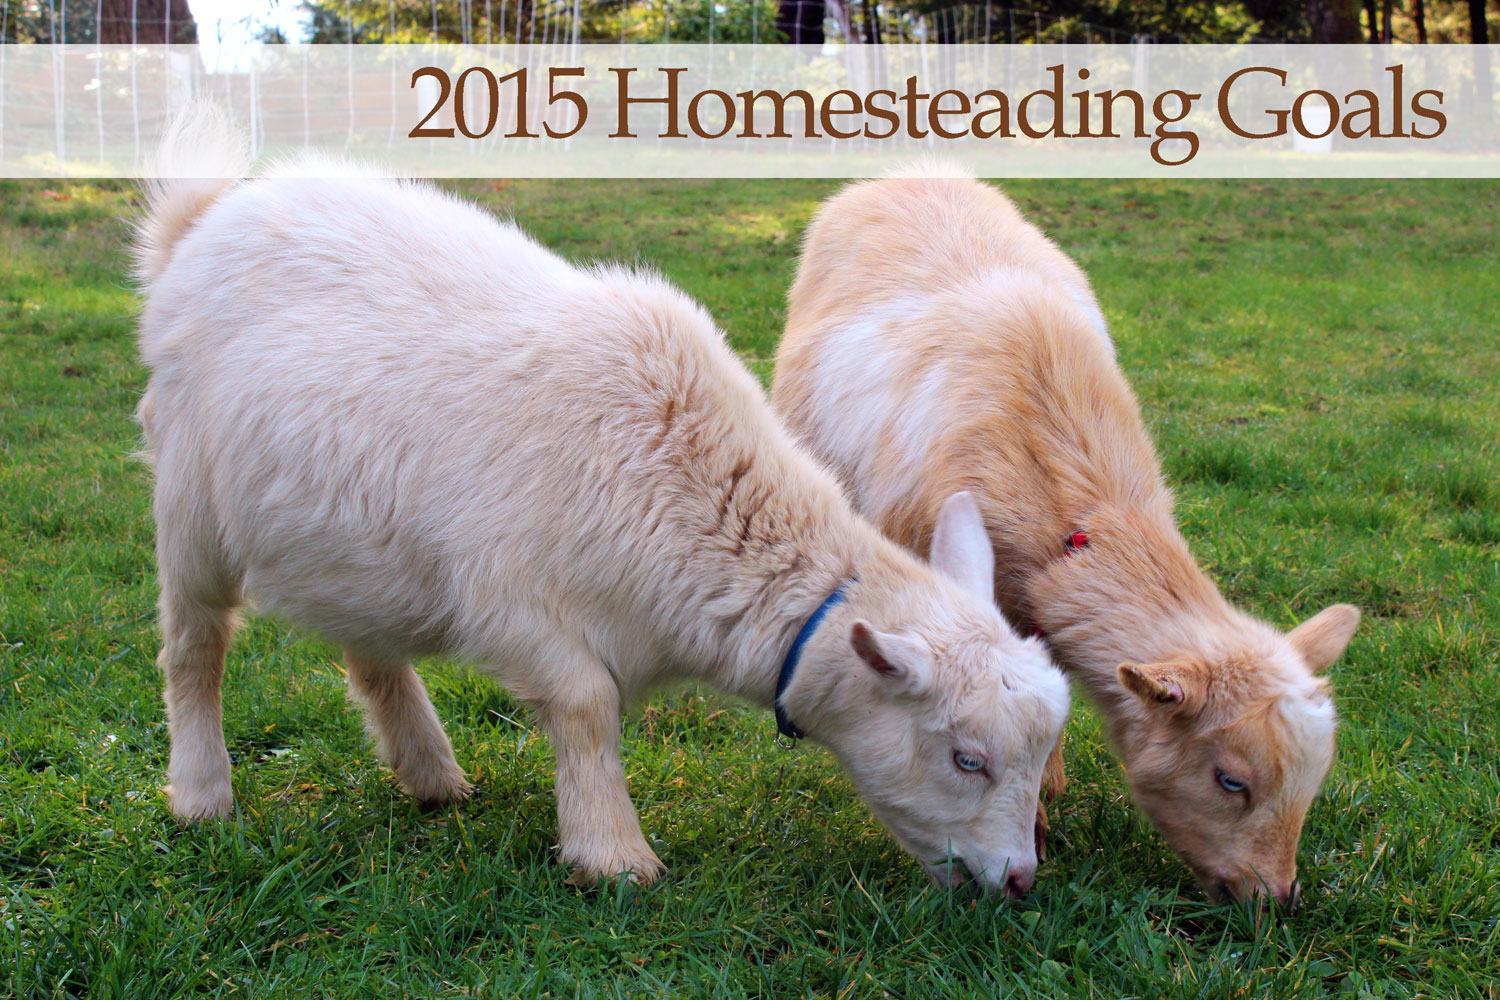 Homesteading Goals for 2015